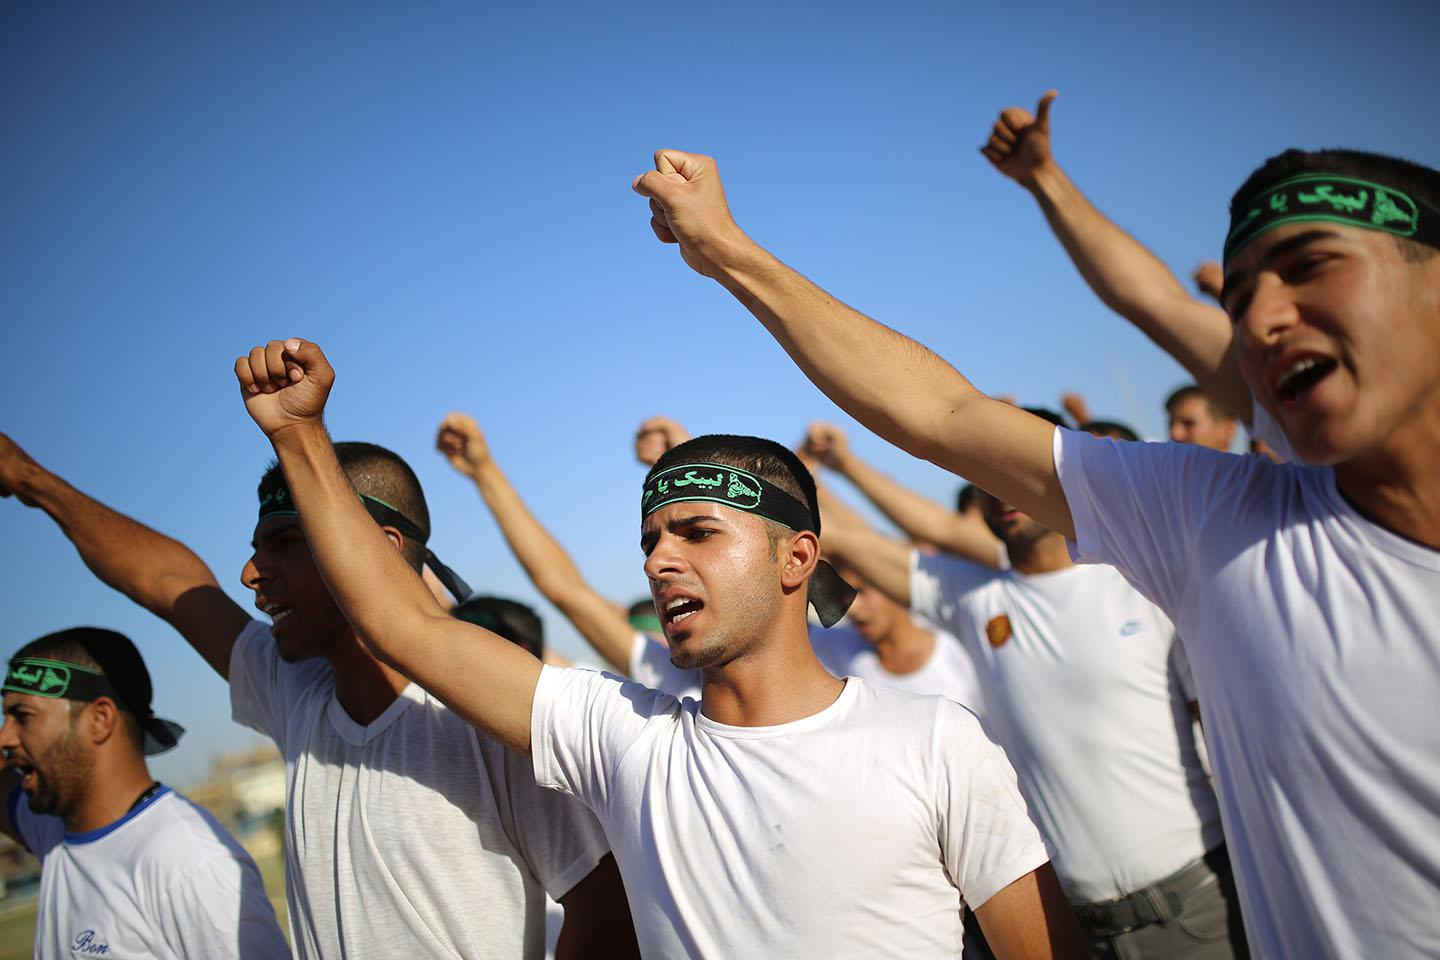 Shiite volunteers, who have joined the Iraqi army to fight against ISIS forces, participate in military-style training in Najaf, June 23, 2014.